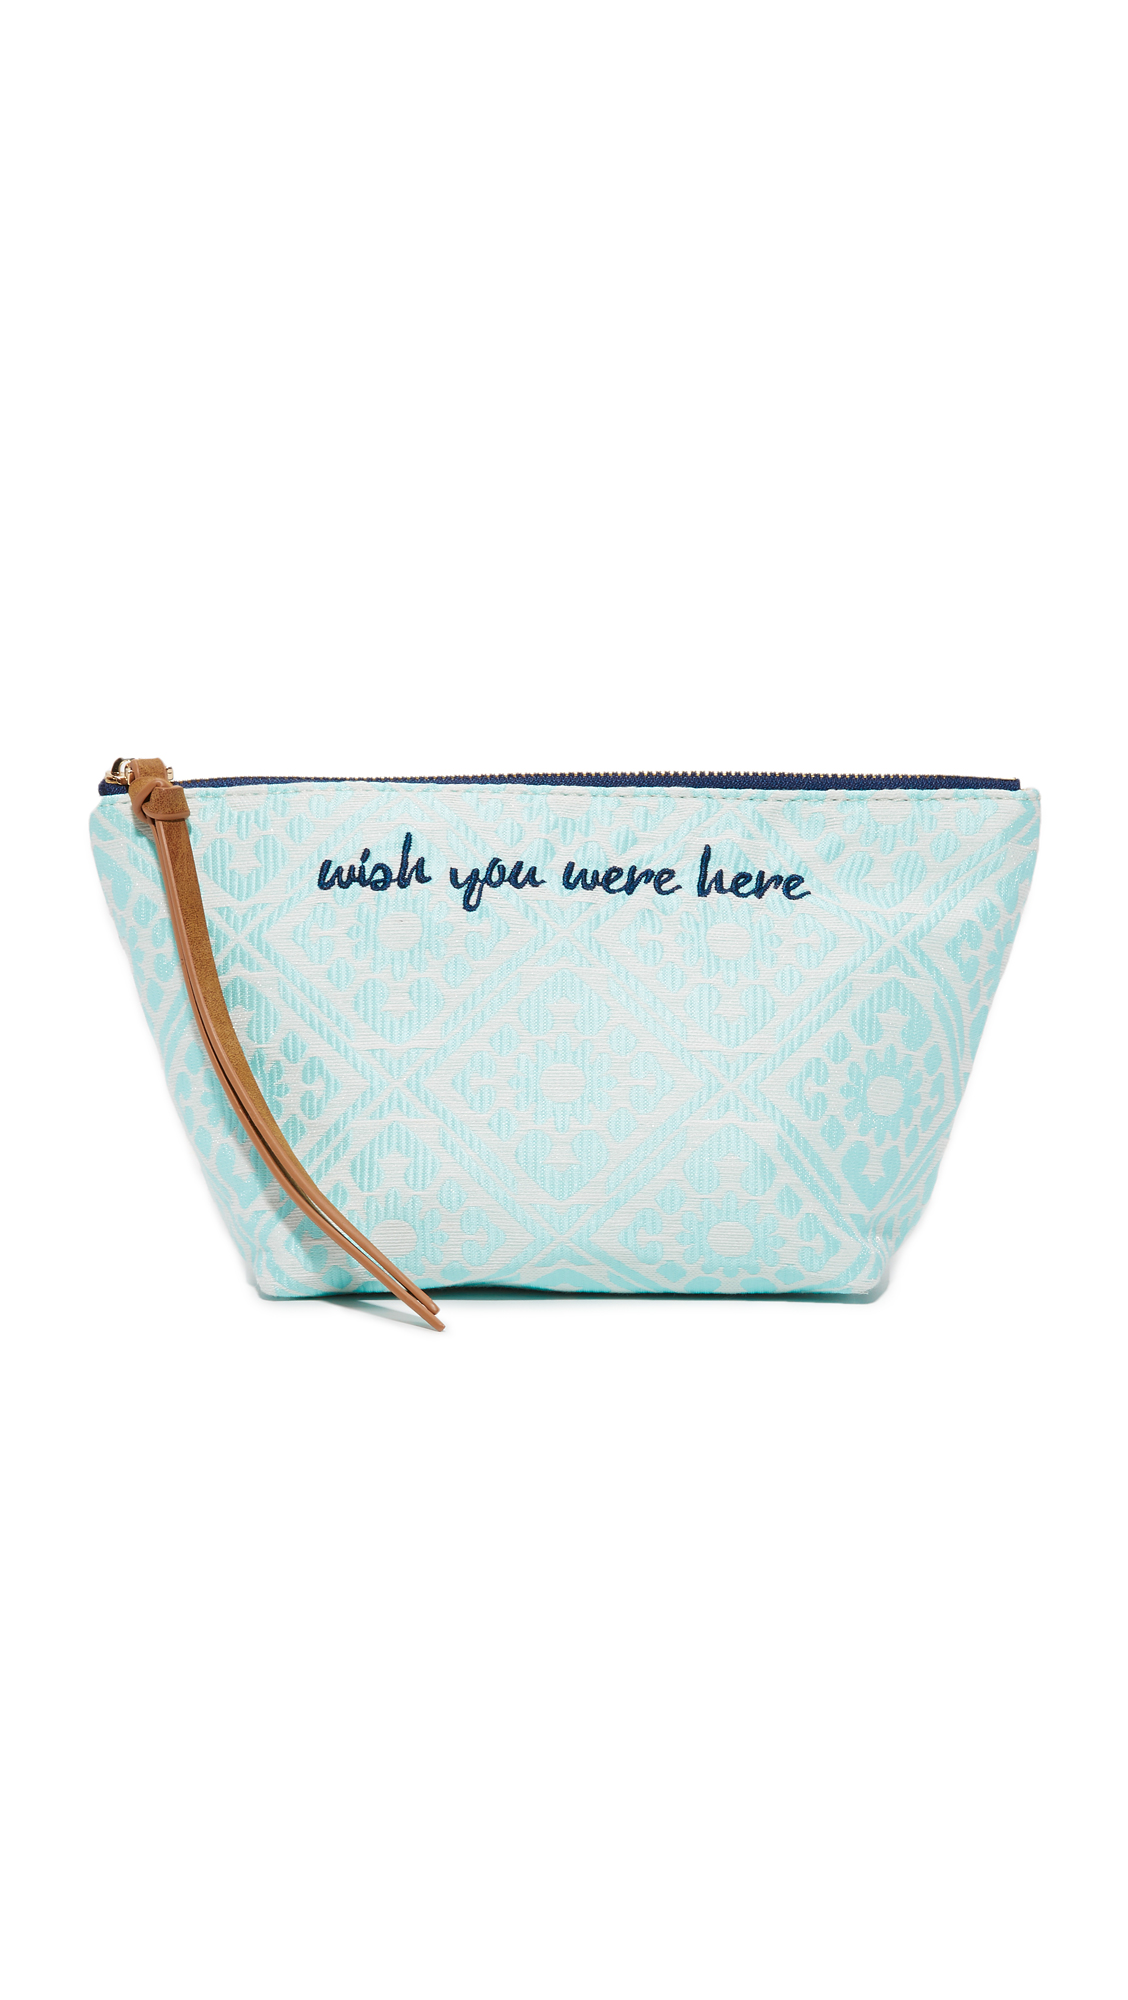 deux lux female 201920 deux lux wish you were here cosmetic case blue